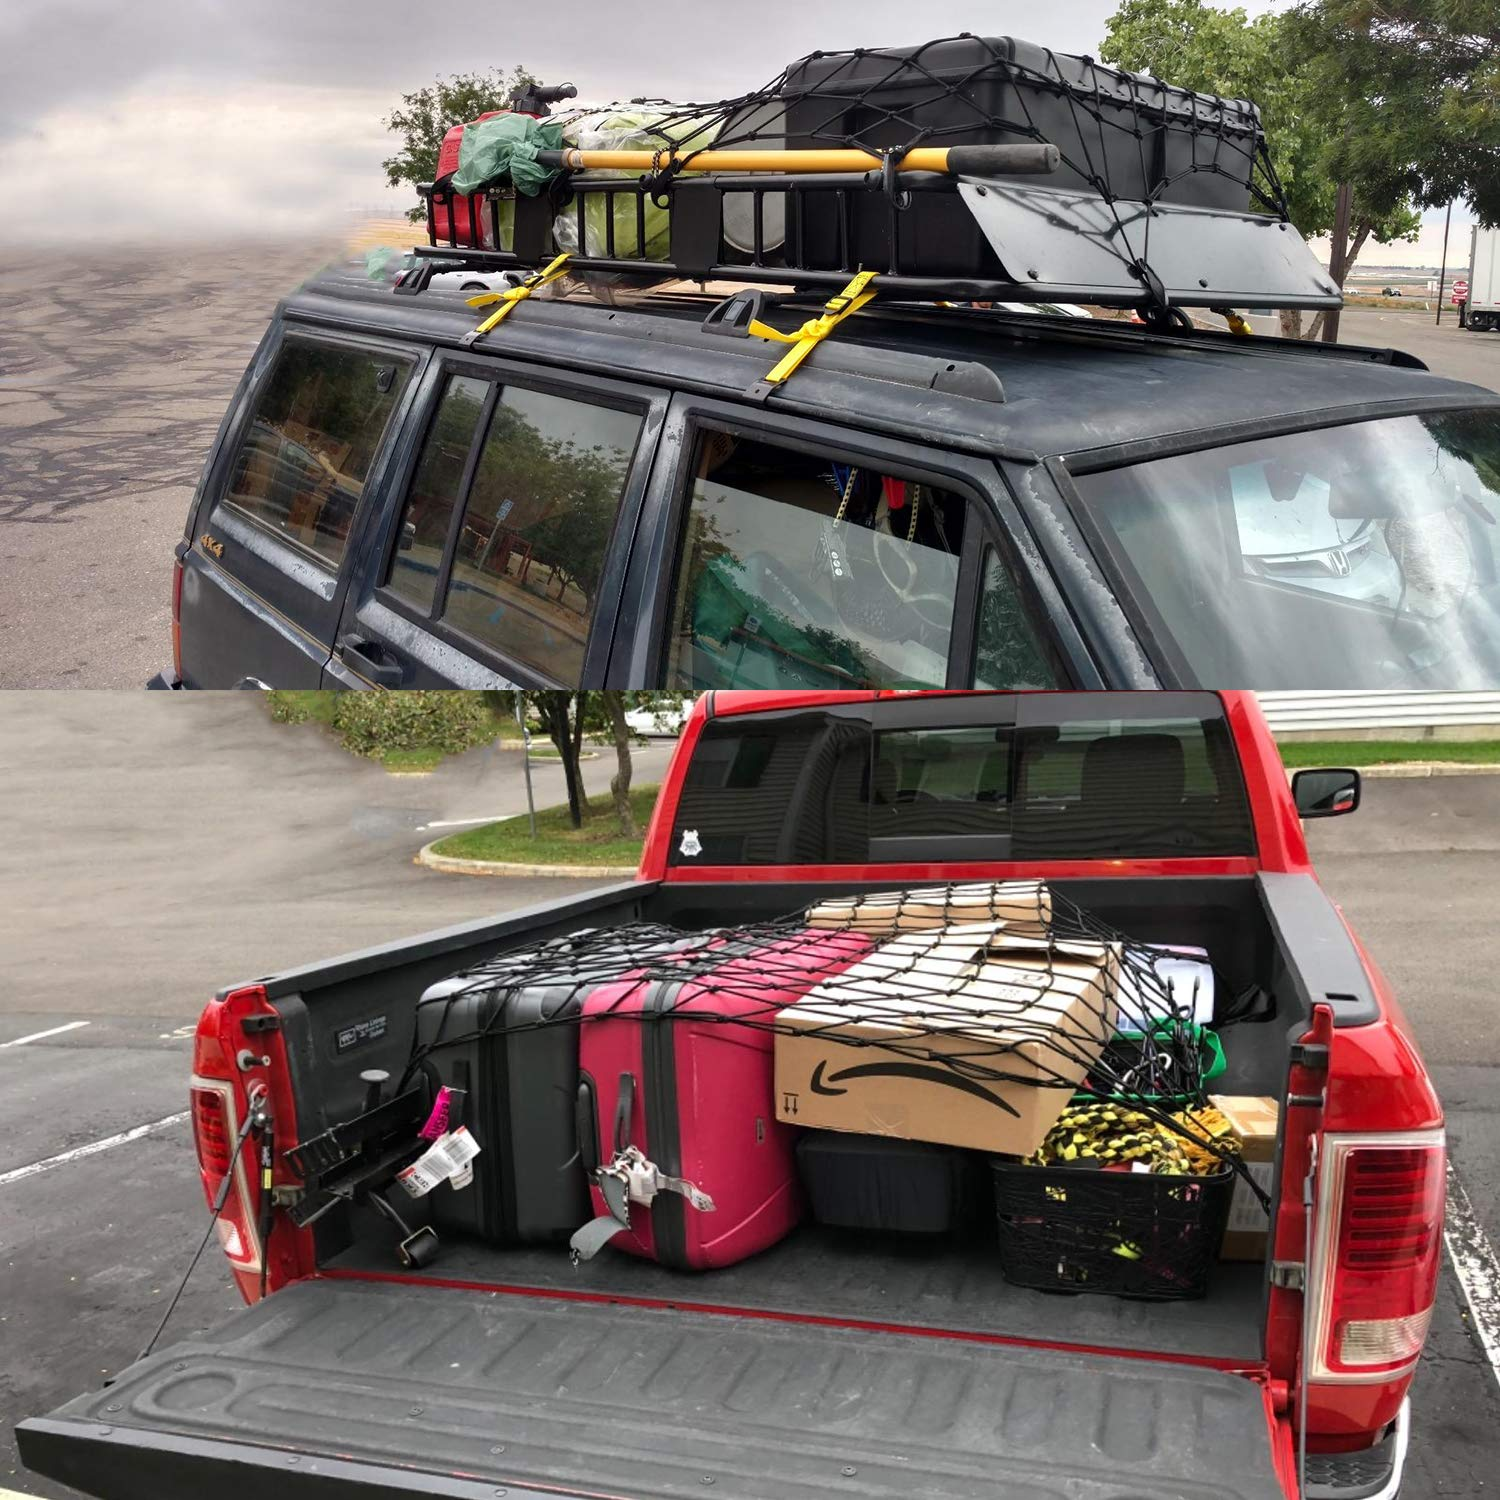 Latex Truck Bed Mesh Truck Bed Net Storage 3x4 to 6x8 Heavy Duty Bungee Cargo Net 12pcs Free Carabiners /& Storage Bag for Loads Tighter Cargo Hitch